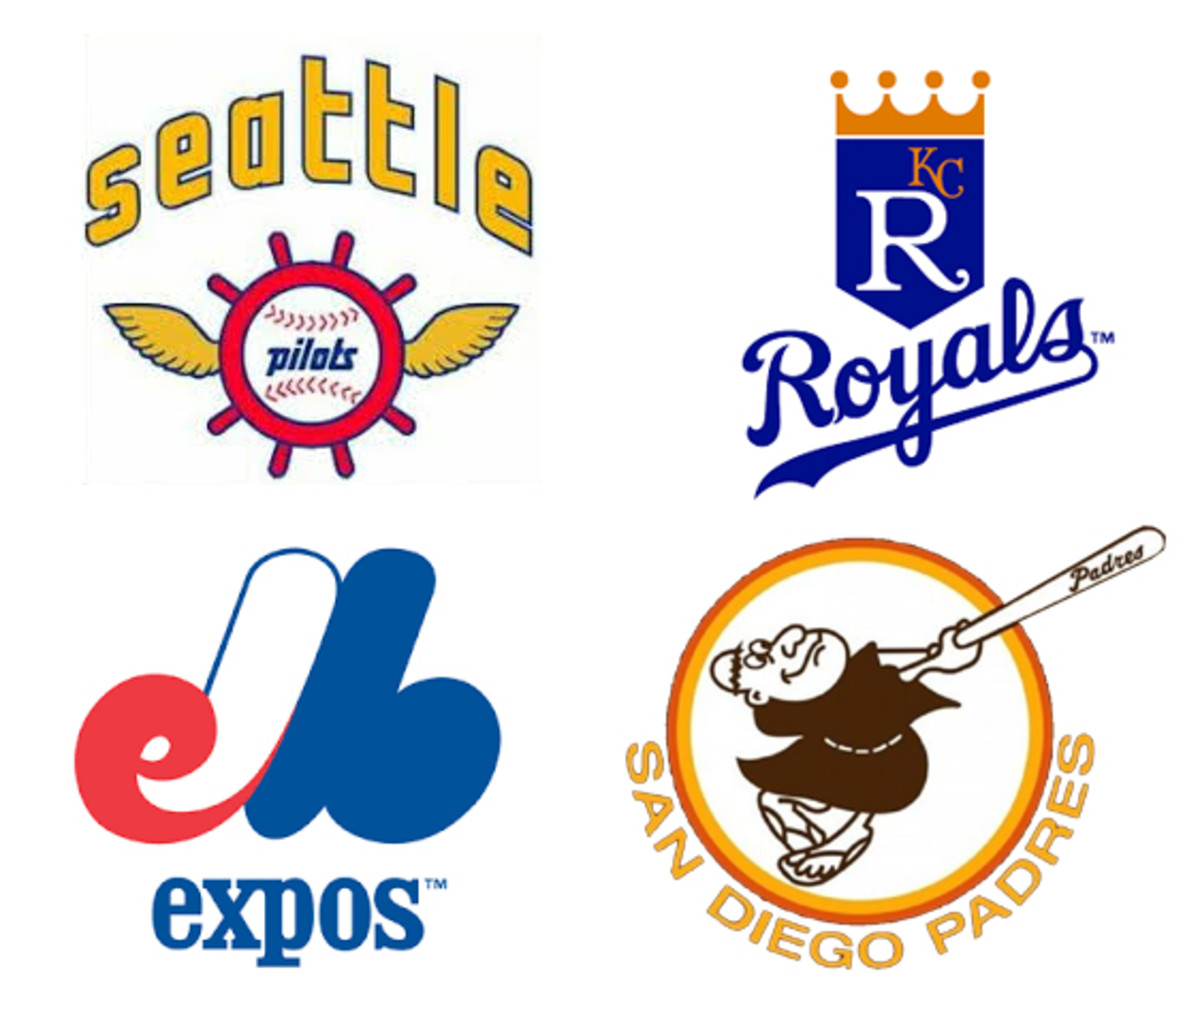 In 1969, Four New Teams Changed Baseball's Post-Season